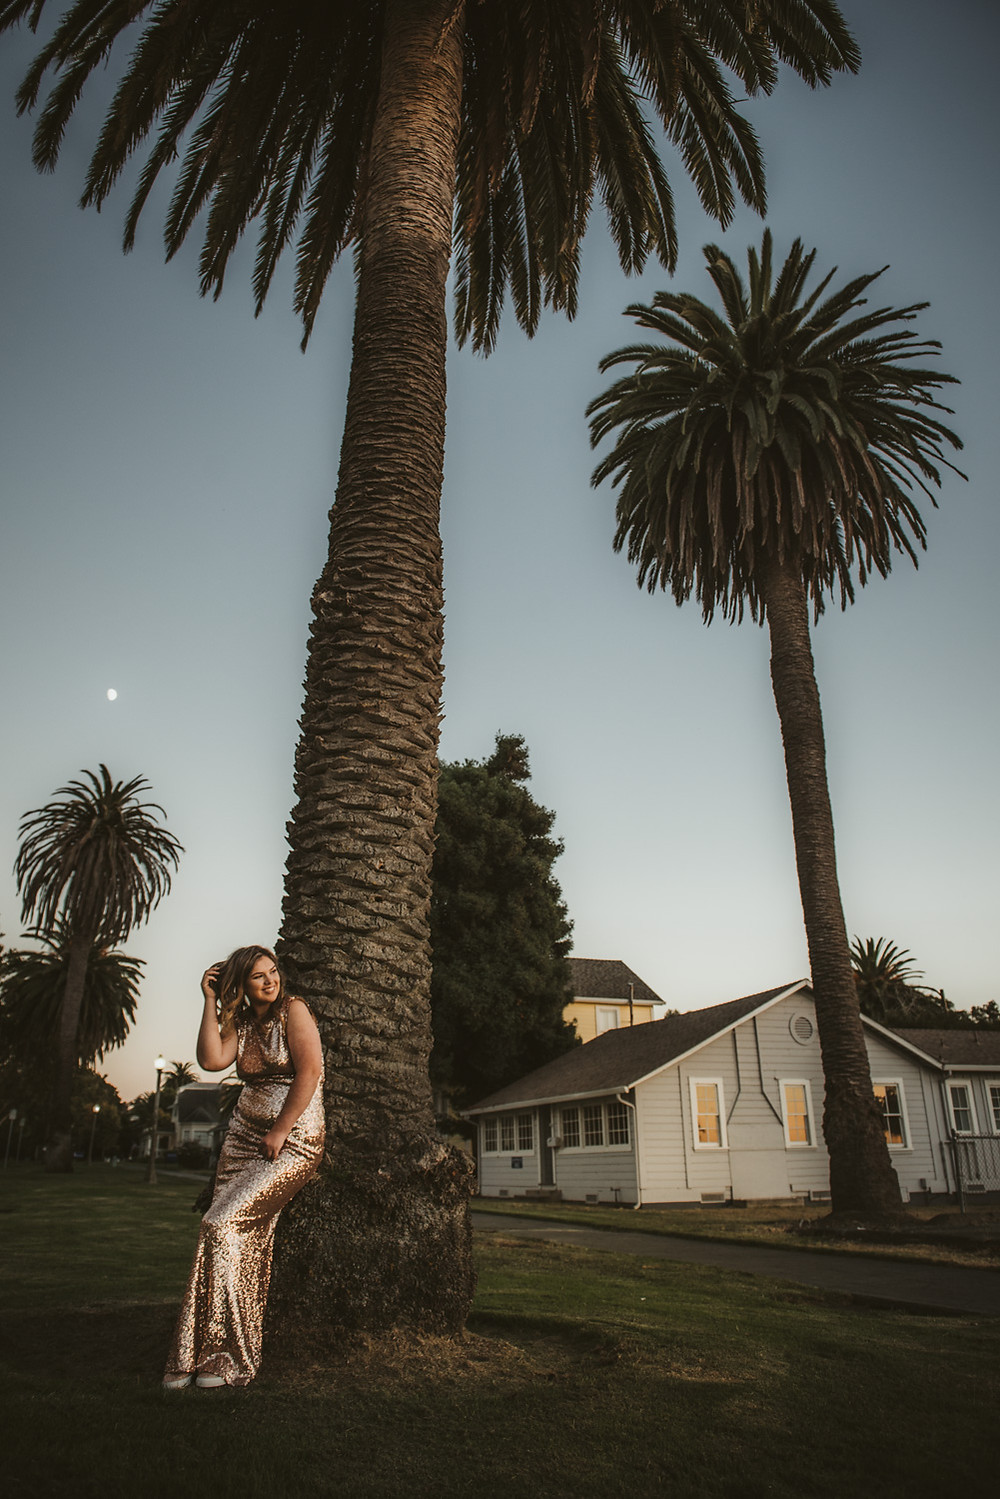 Napa Portrait Photographer | Hemlock House Photography